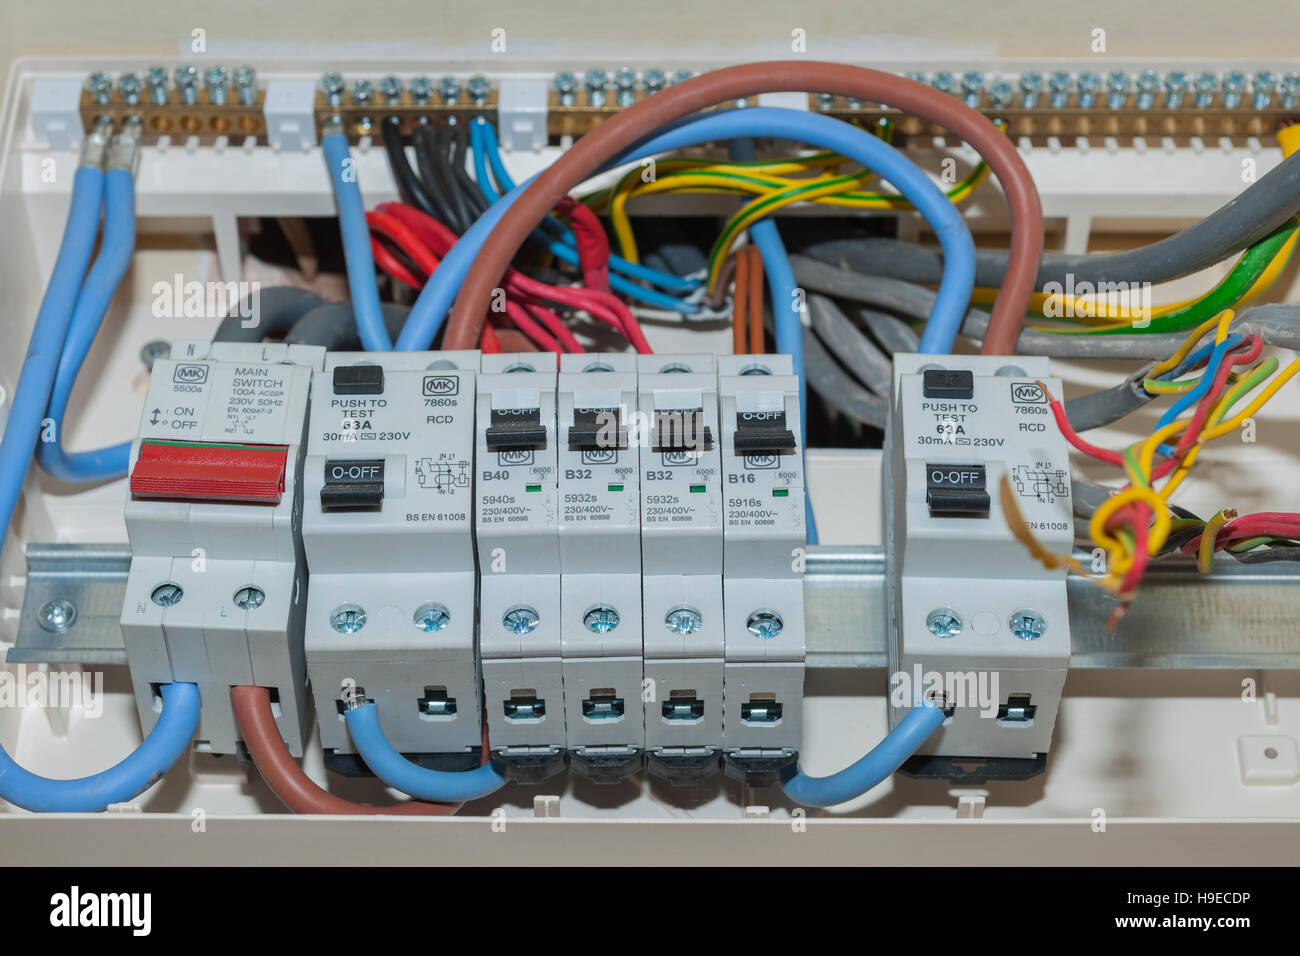 a rcd fuse box in the uk stock photo 126321602 alamya rcd fuse box in the uk